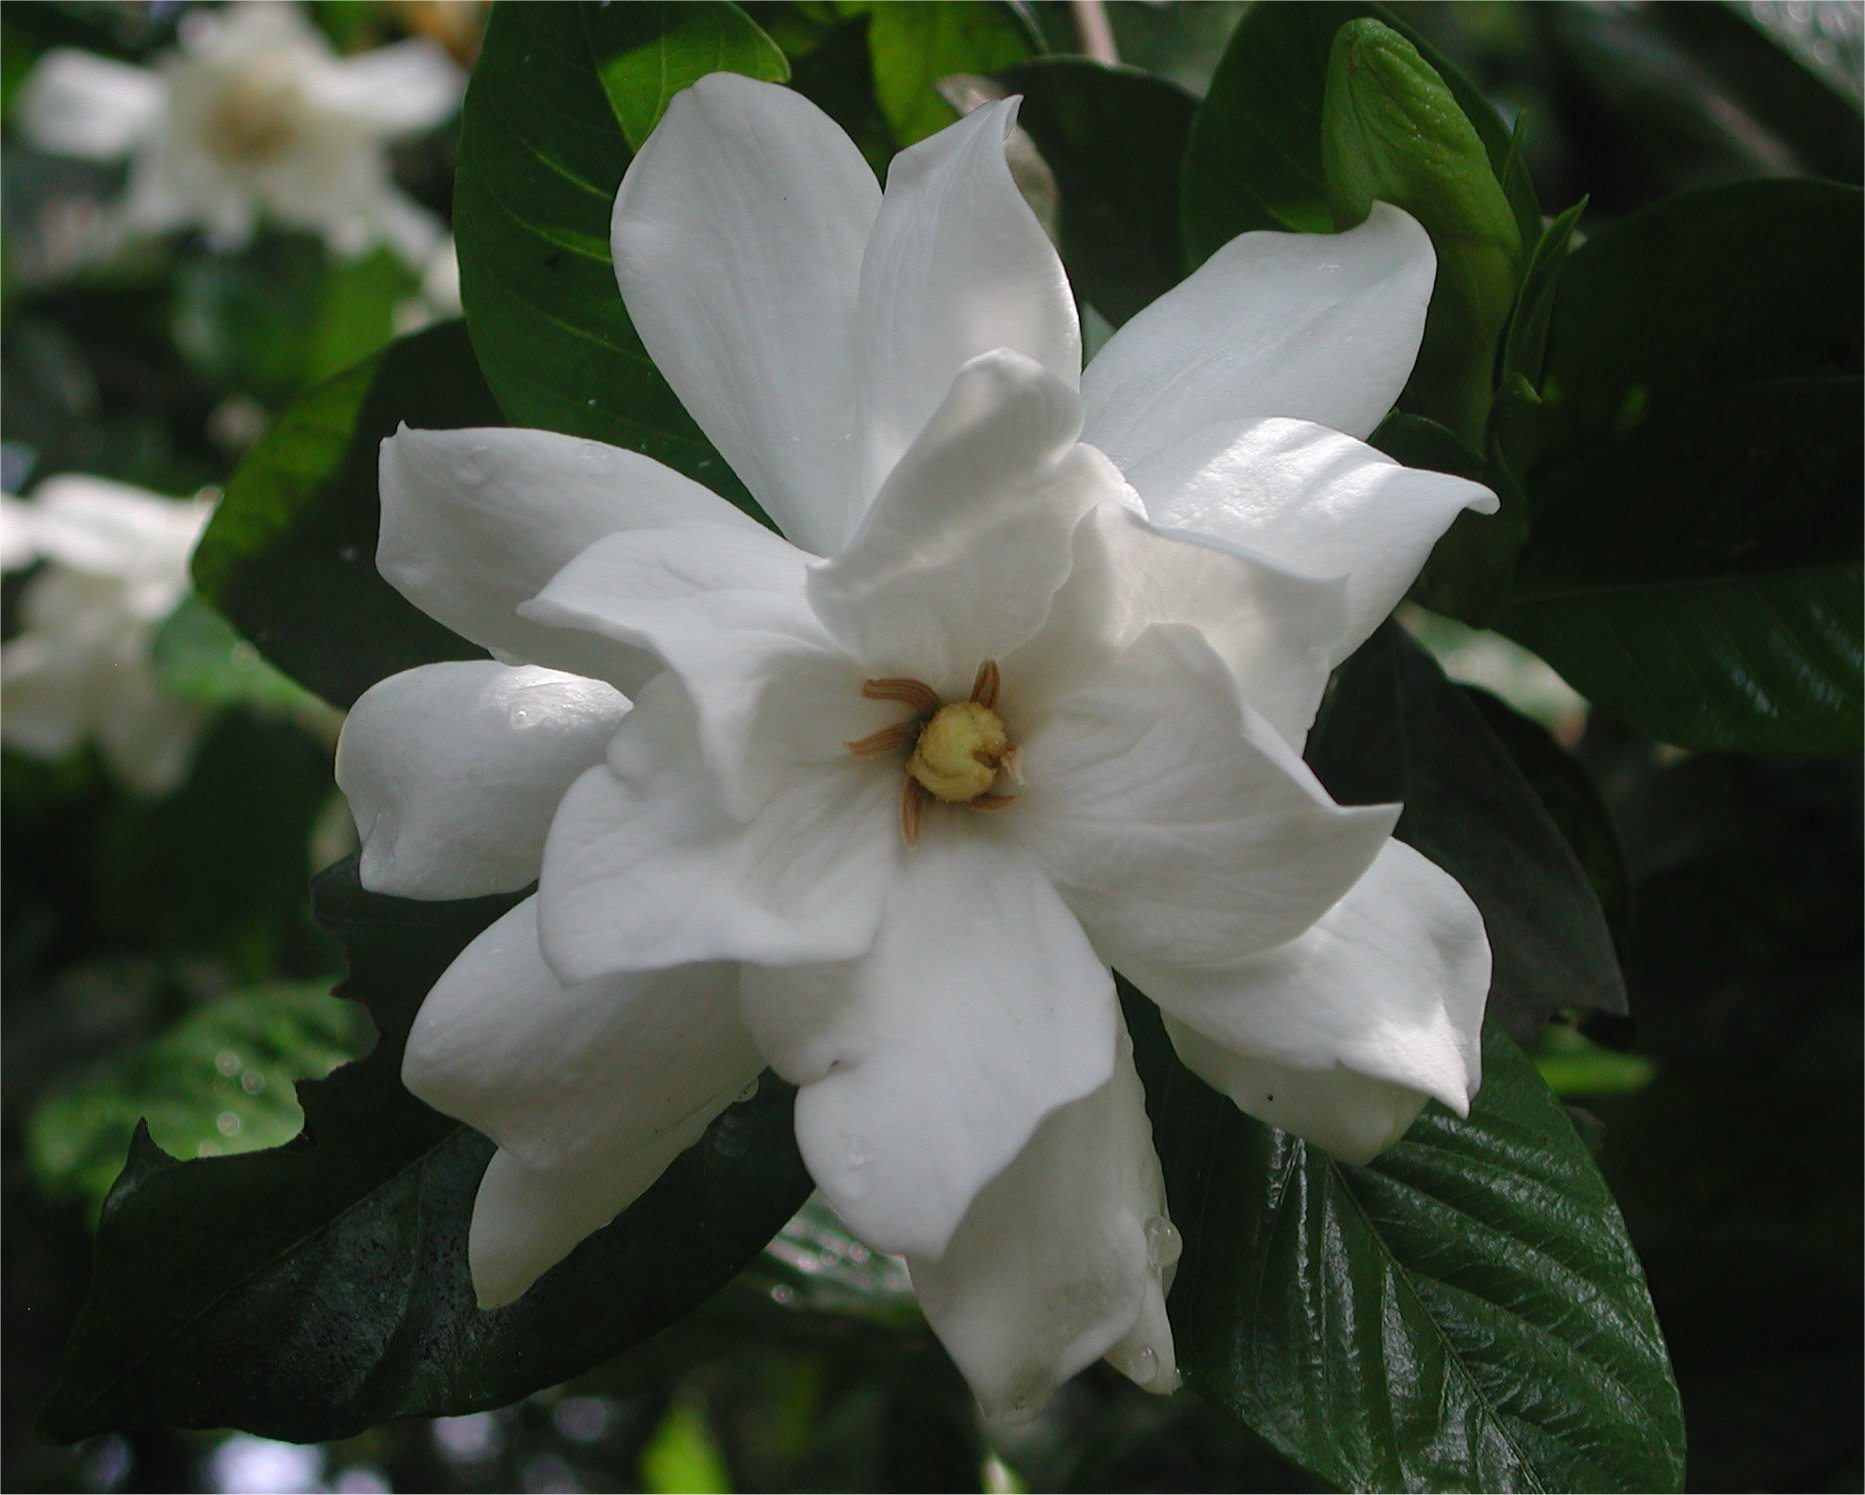 gardenia flower  nature photo gallery, Natural flower